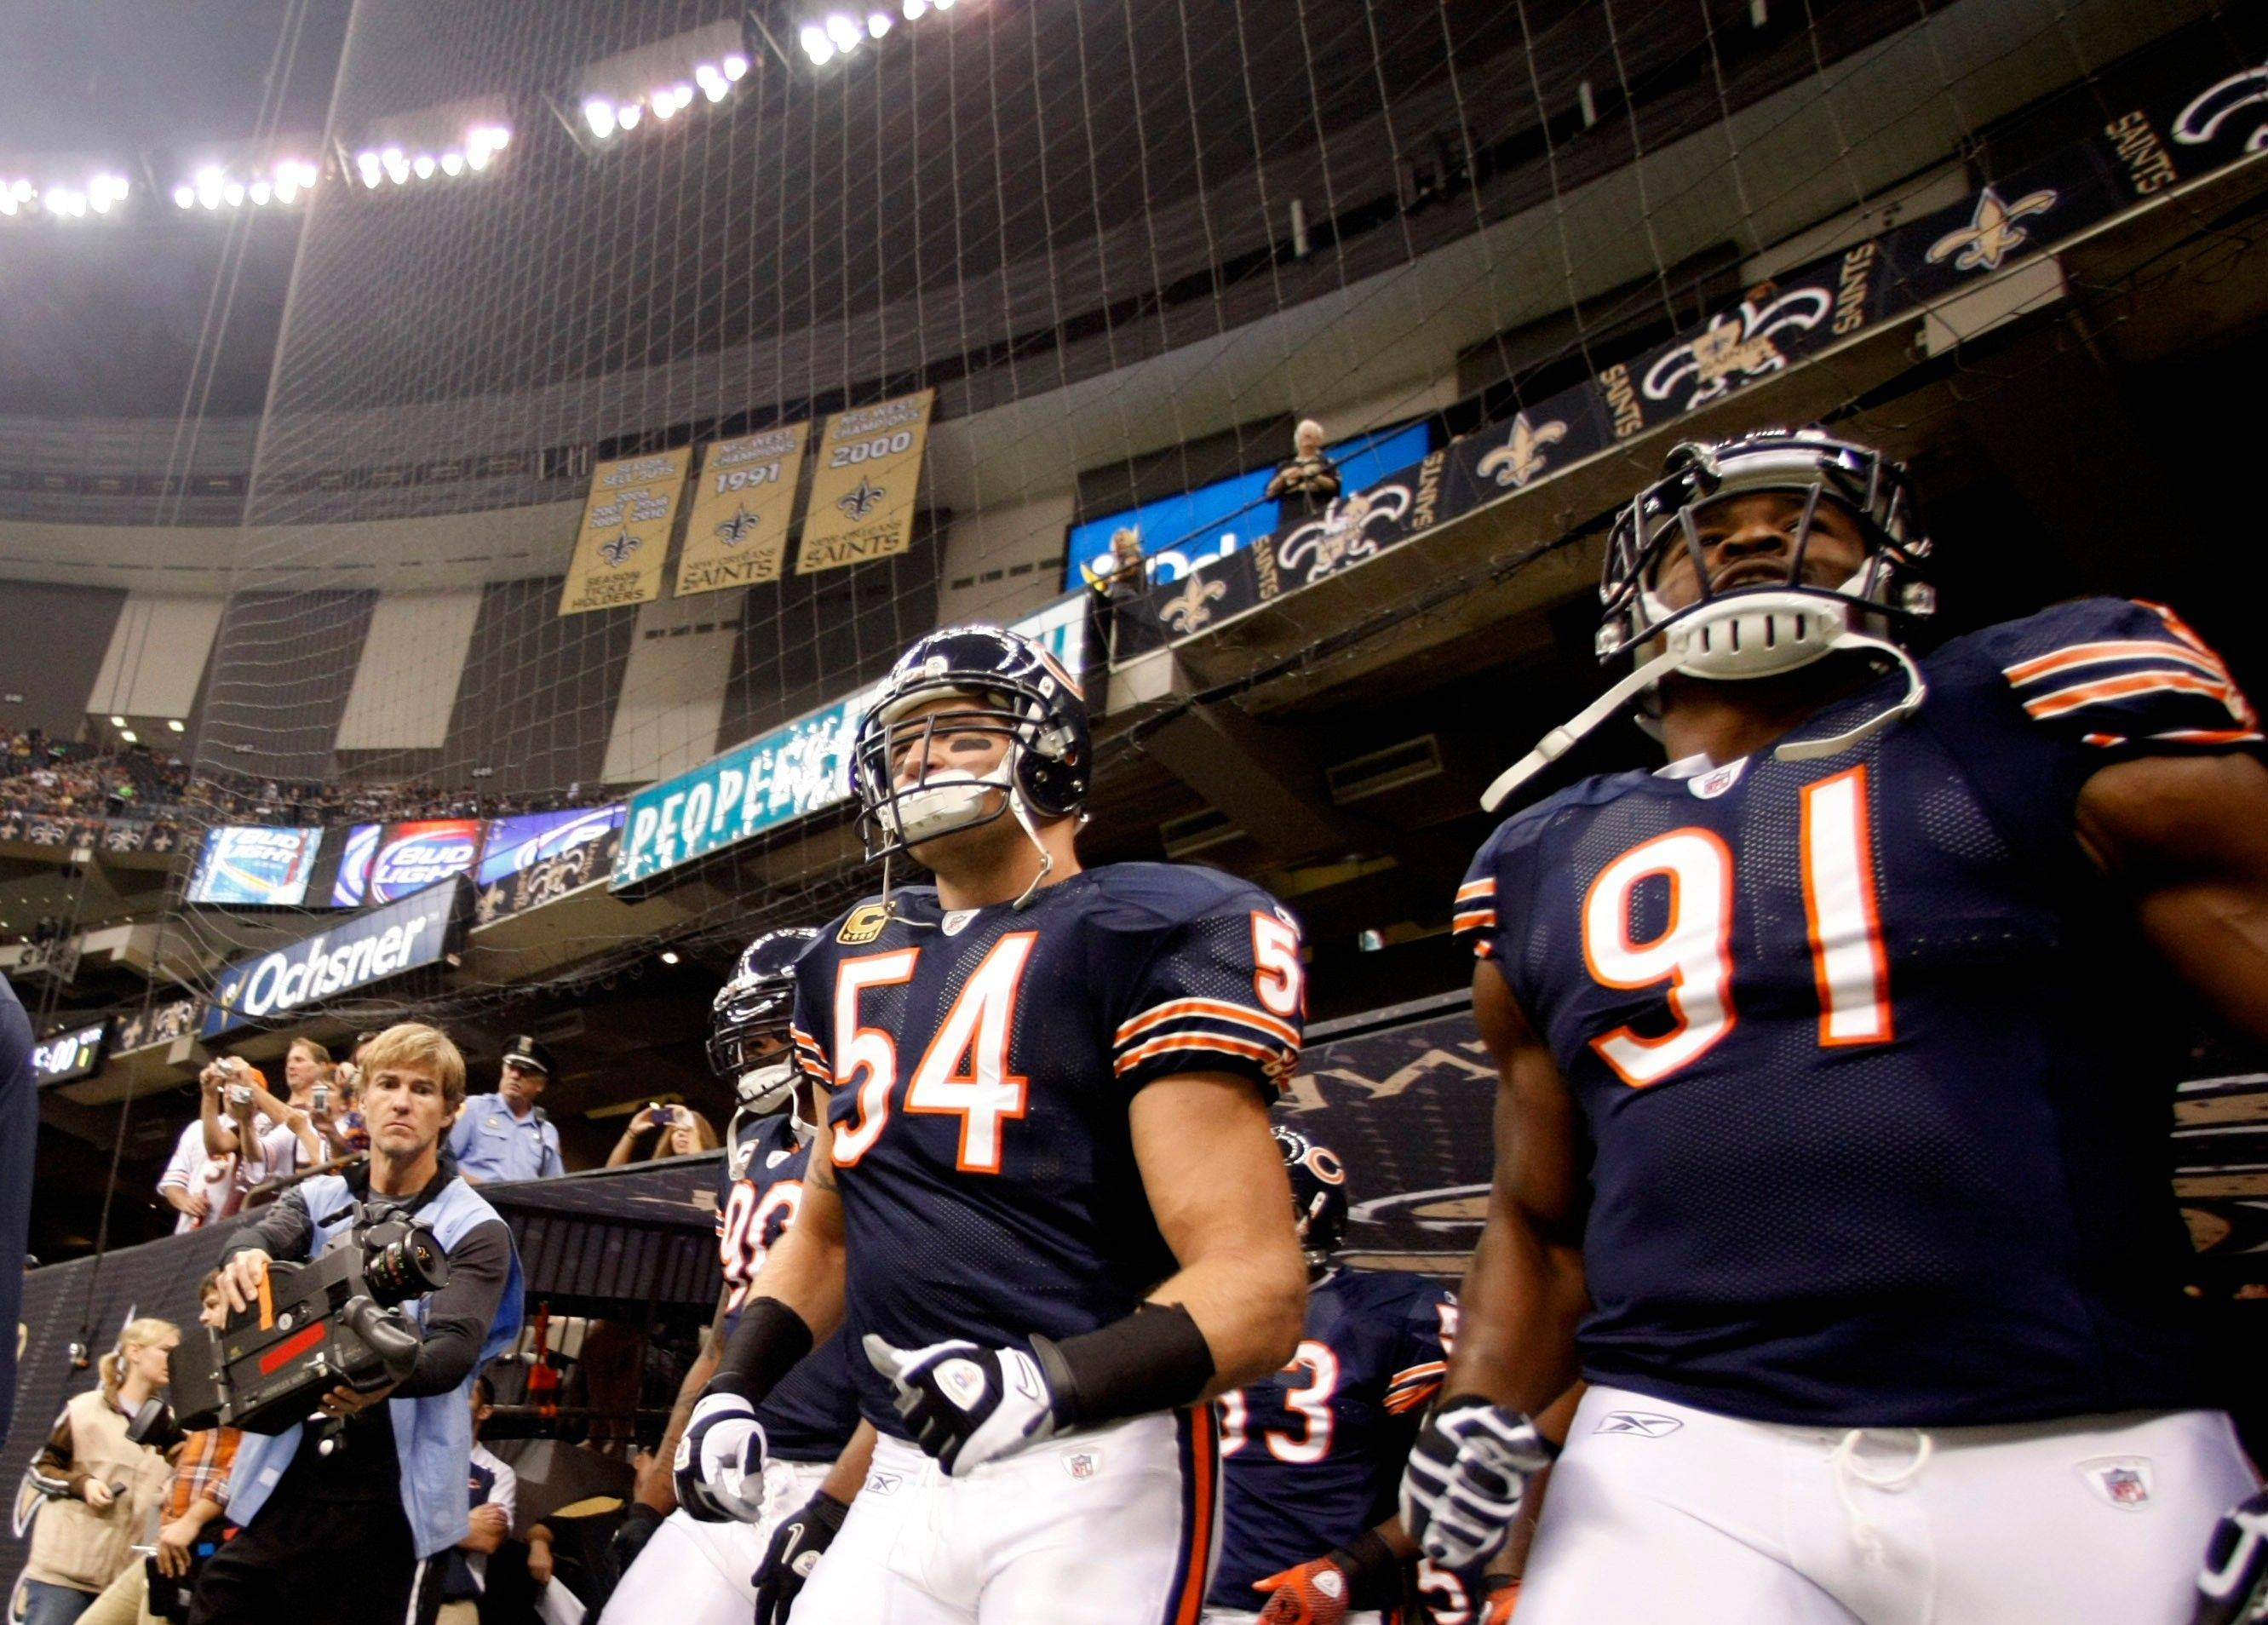 Chicago Bears middle linebacker Brian Urlacher (54) takes to the field with defensive end Julius Peppers (90) and defensive tackle Amobi Okoye (91) before the start of an NFL football game against the New Orleans Saints at the Louisiana Superdome in New Orleans, Sunday.